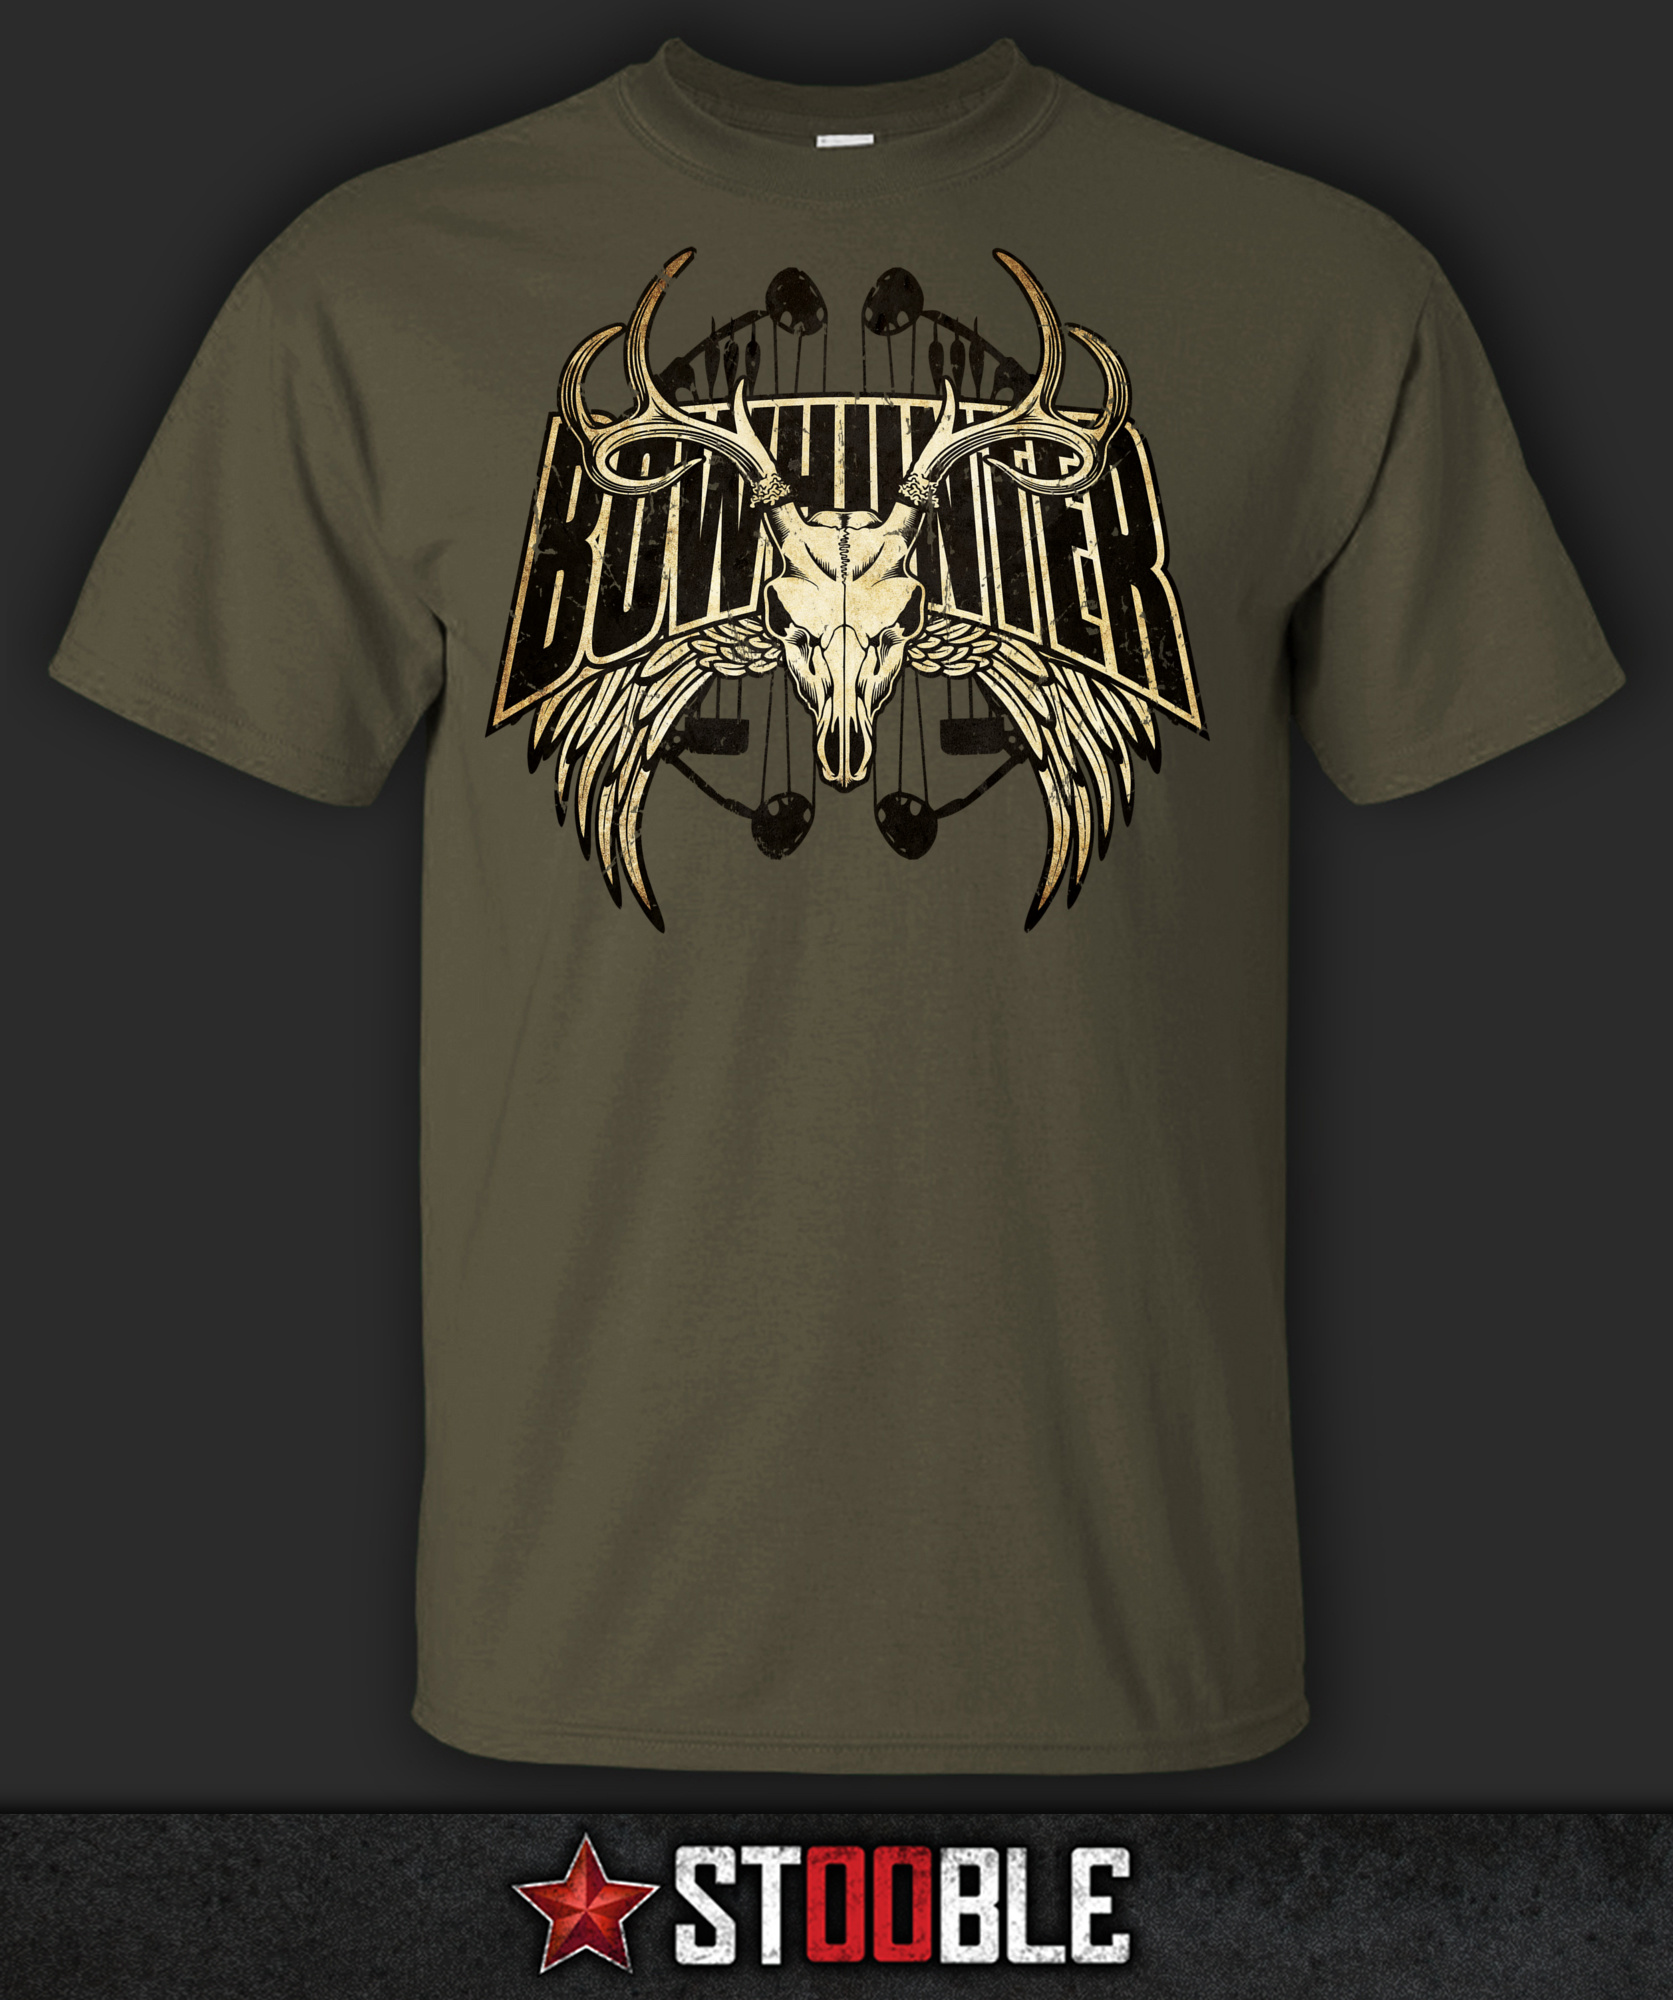 Bowhunter T-Shirt - NewT Shirts Funny Tops Tee New Unisex T Black Style